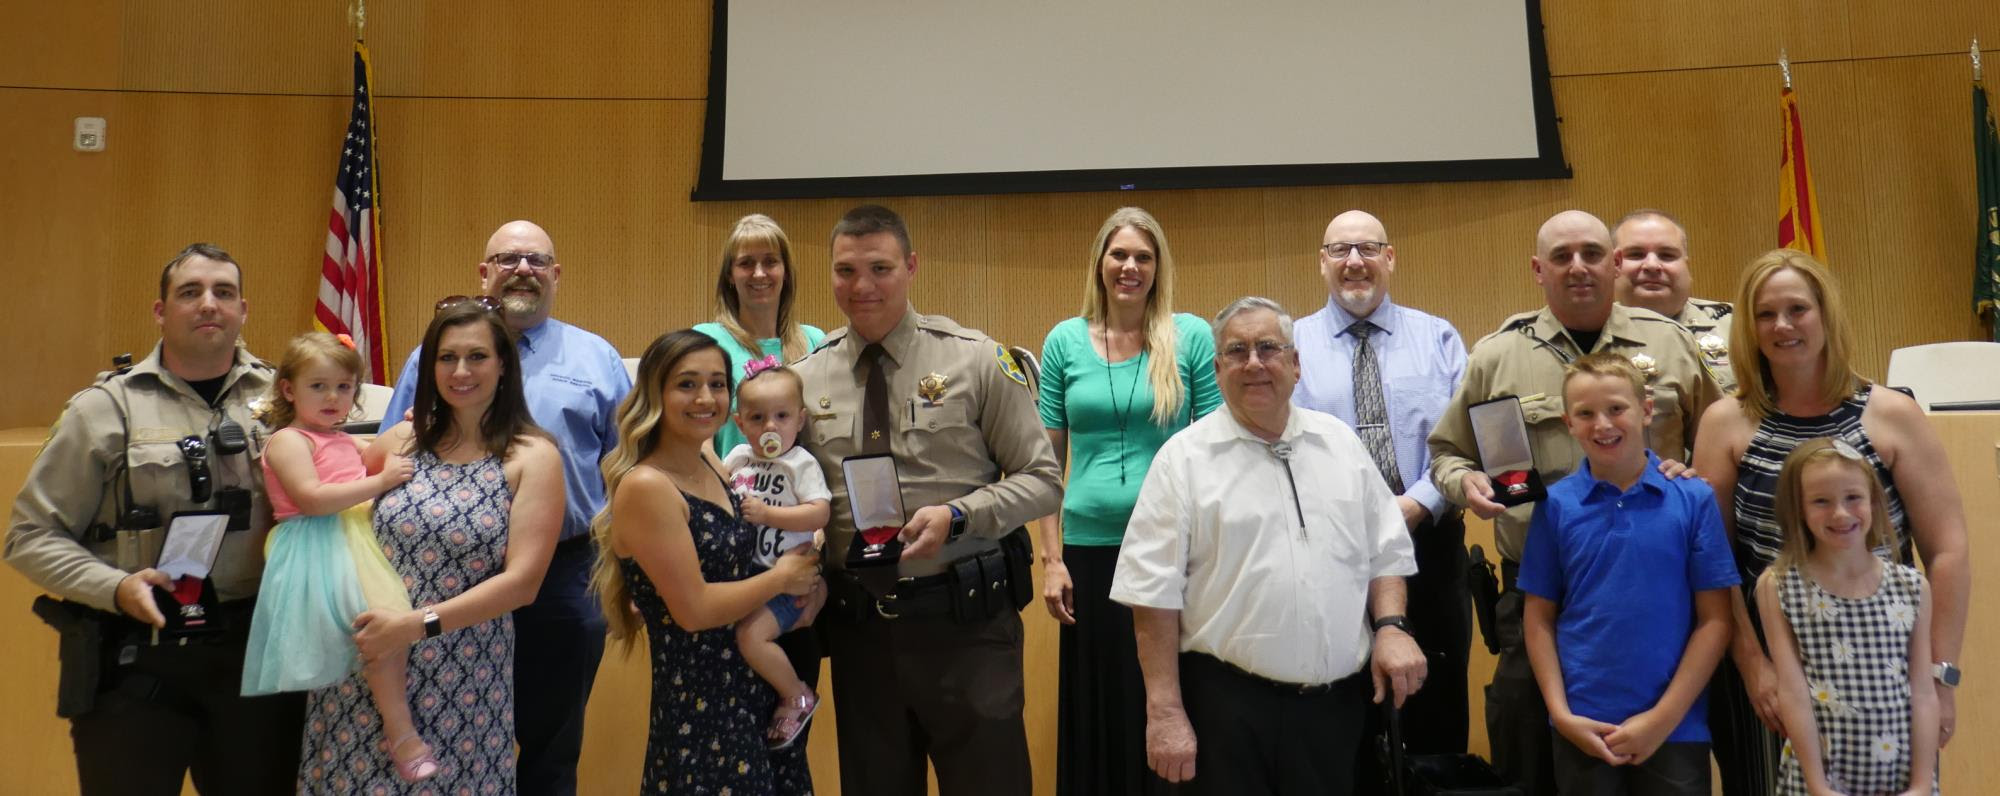 Mayor Barney and the Town Council recognizing MCSO District 6 Deputies at the June 5 Town Council Meeting